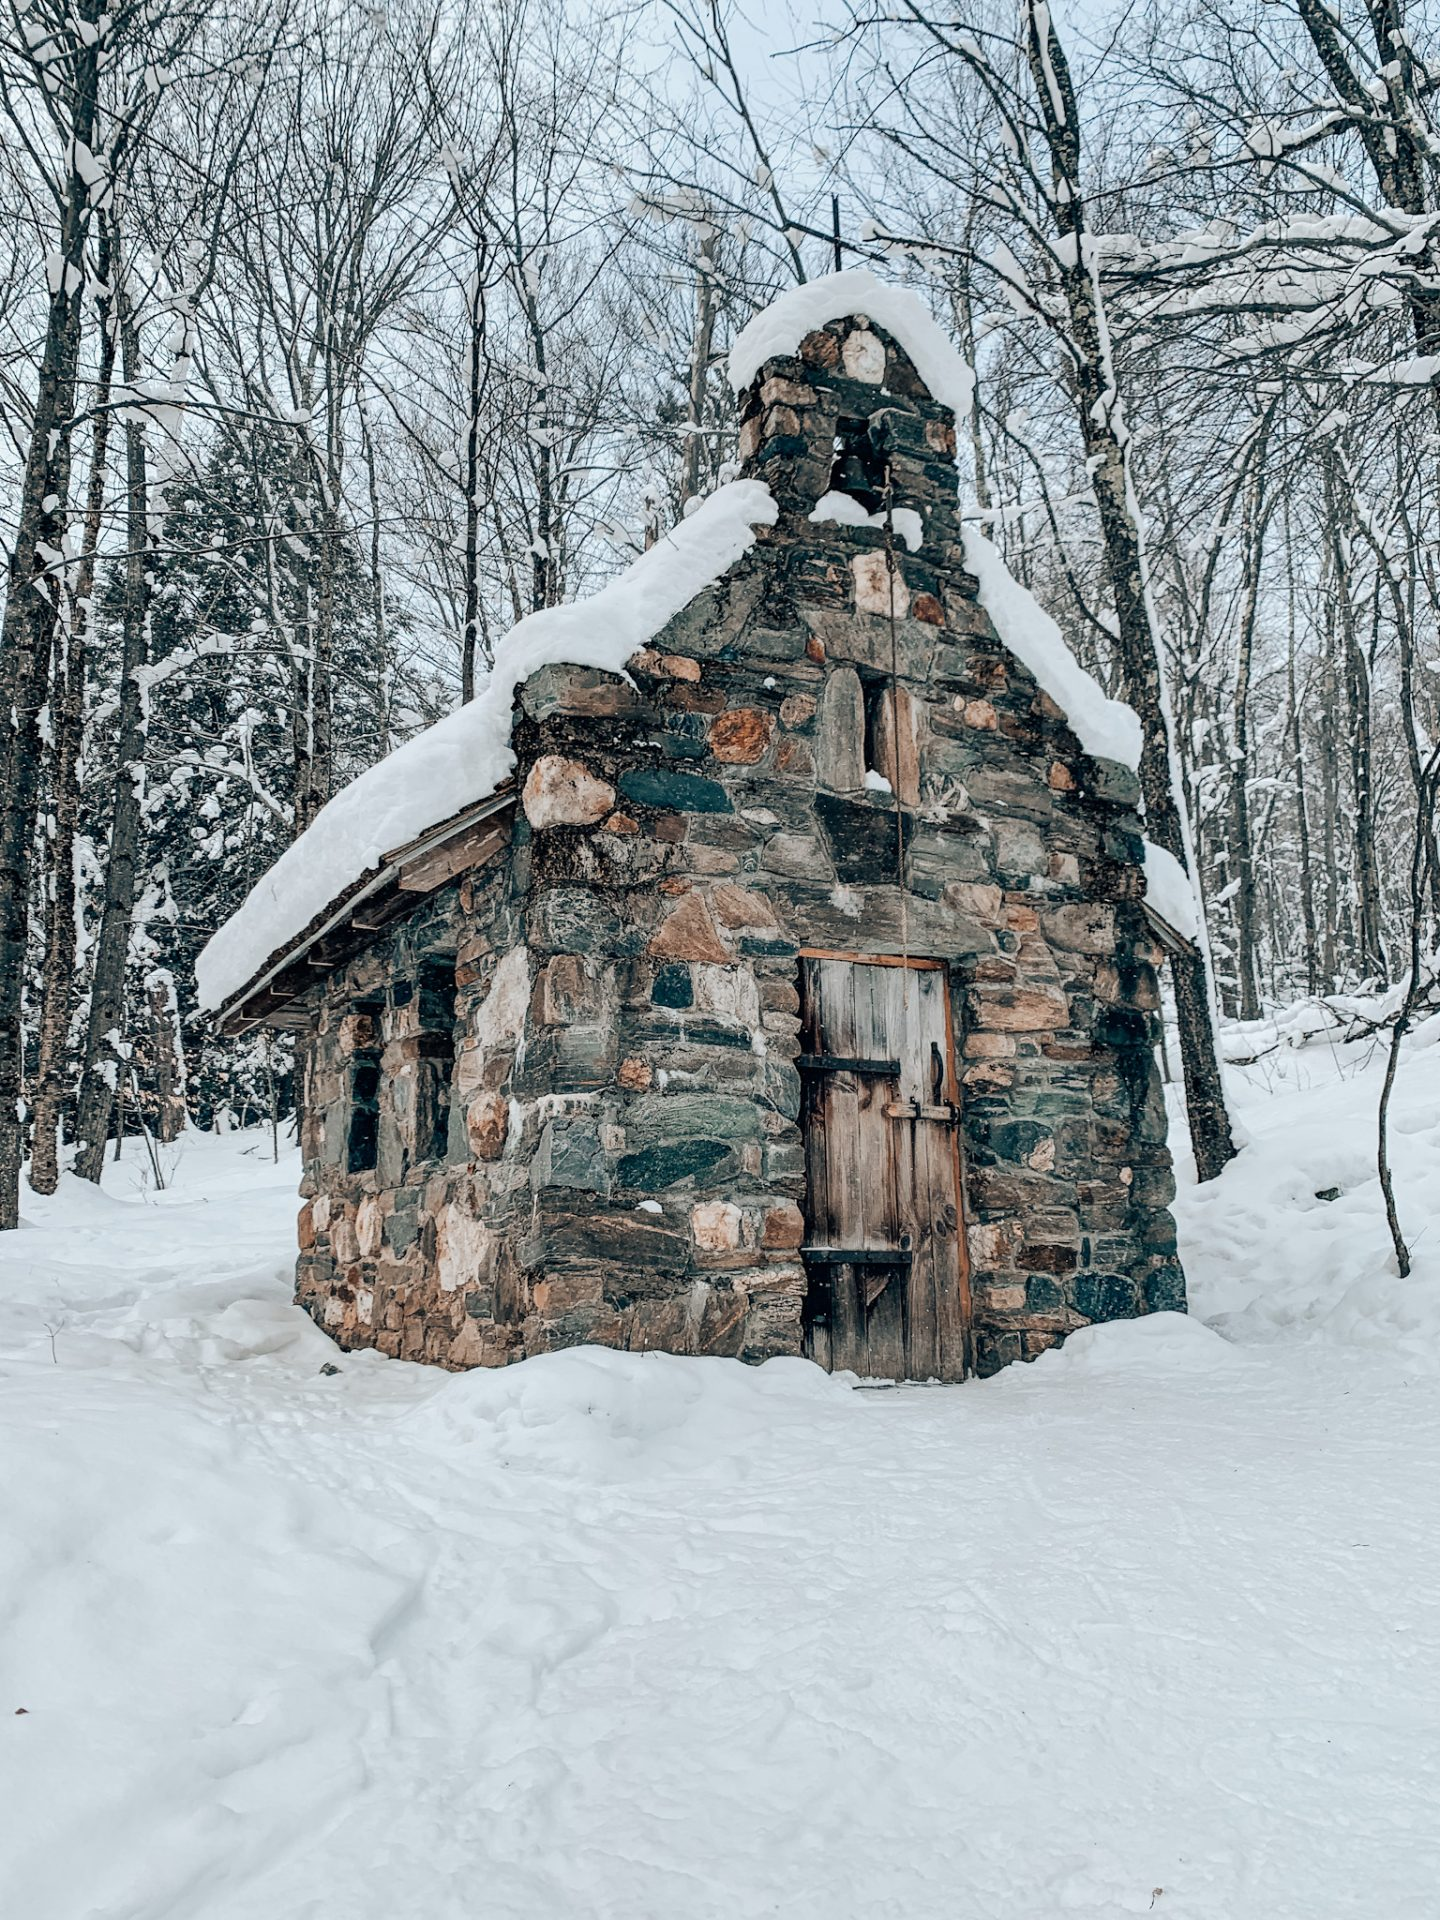 Photo of snowy chapel made of stone